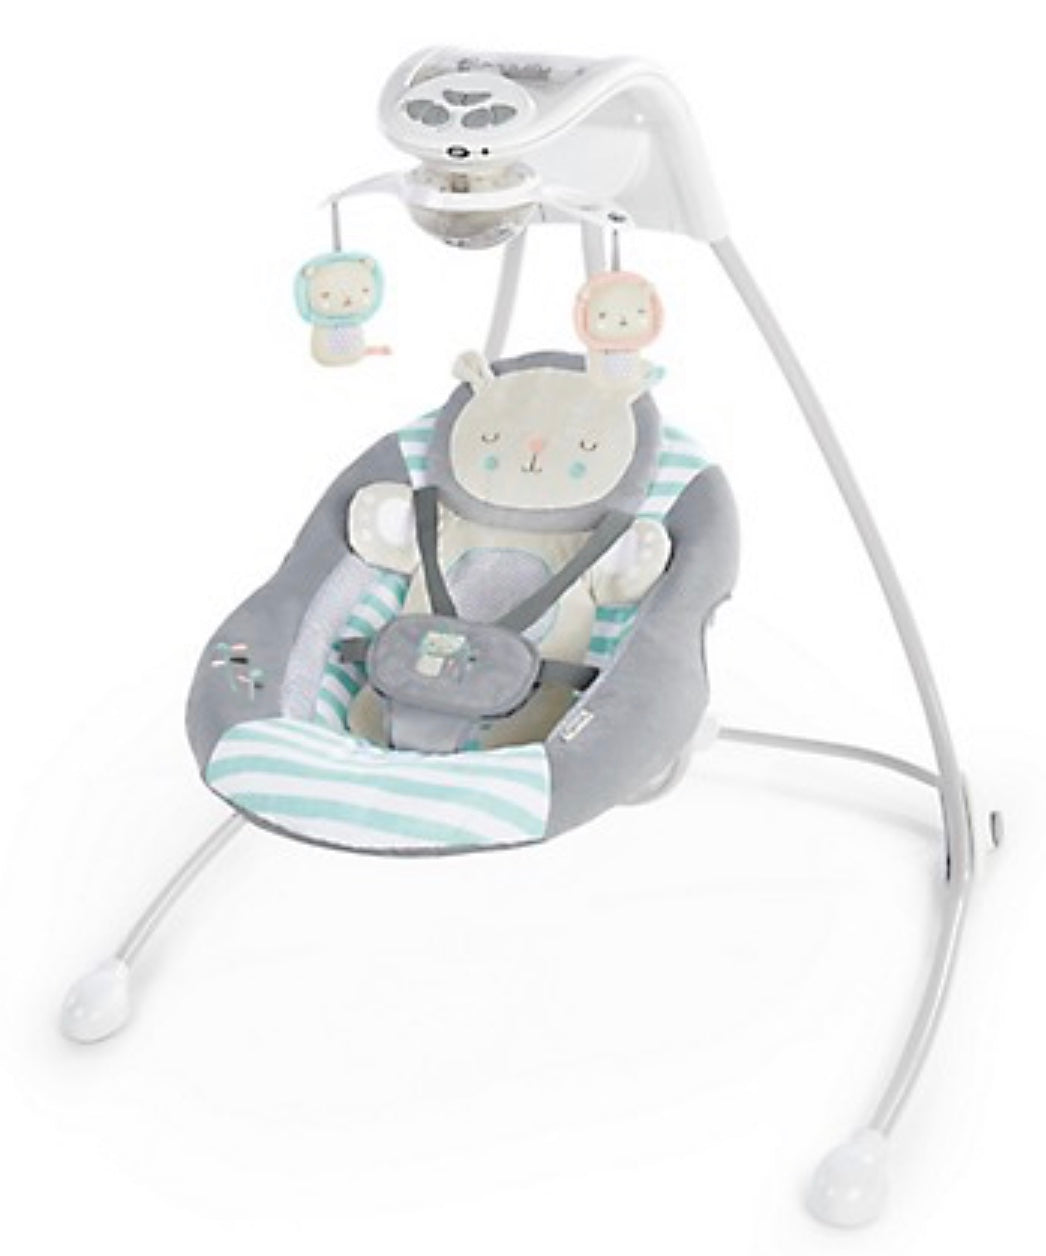 Inlighten Cradling Swing